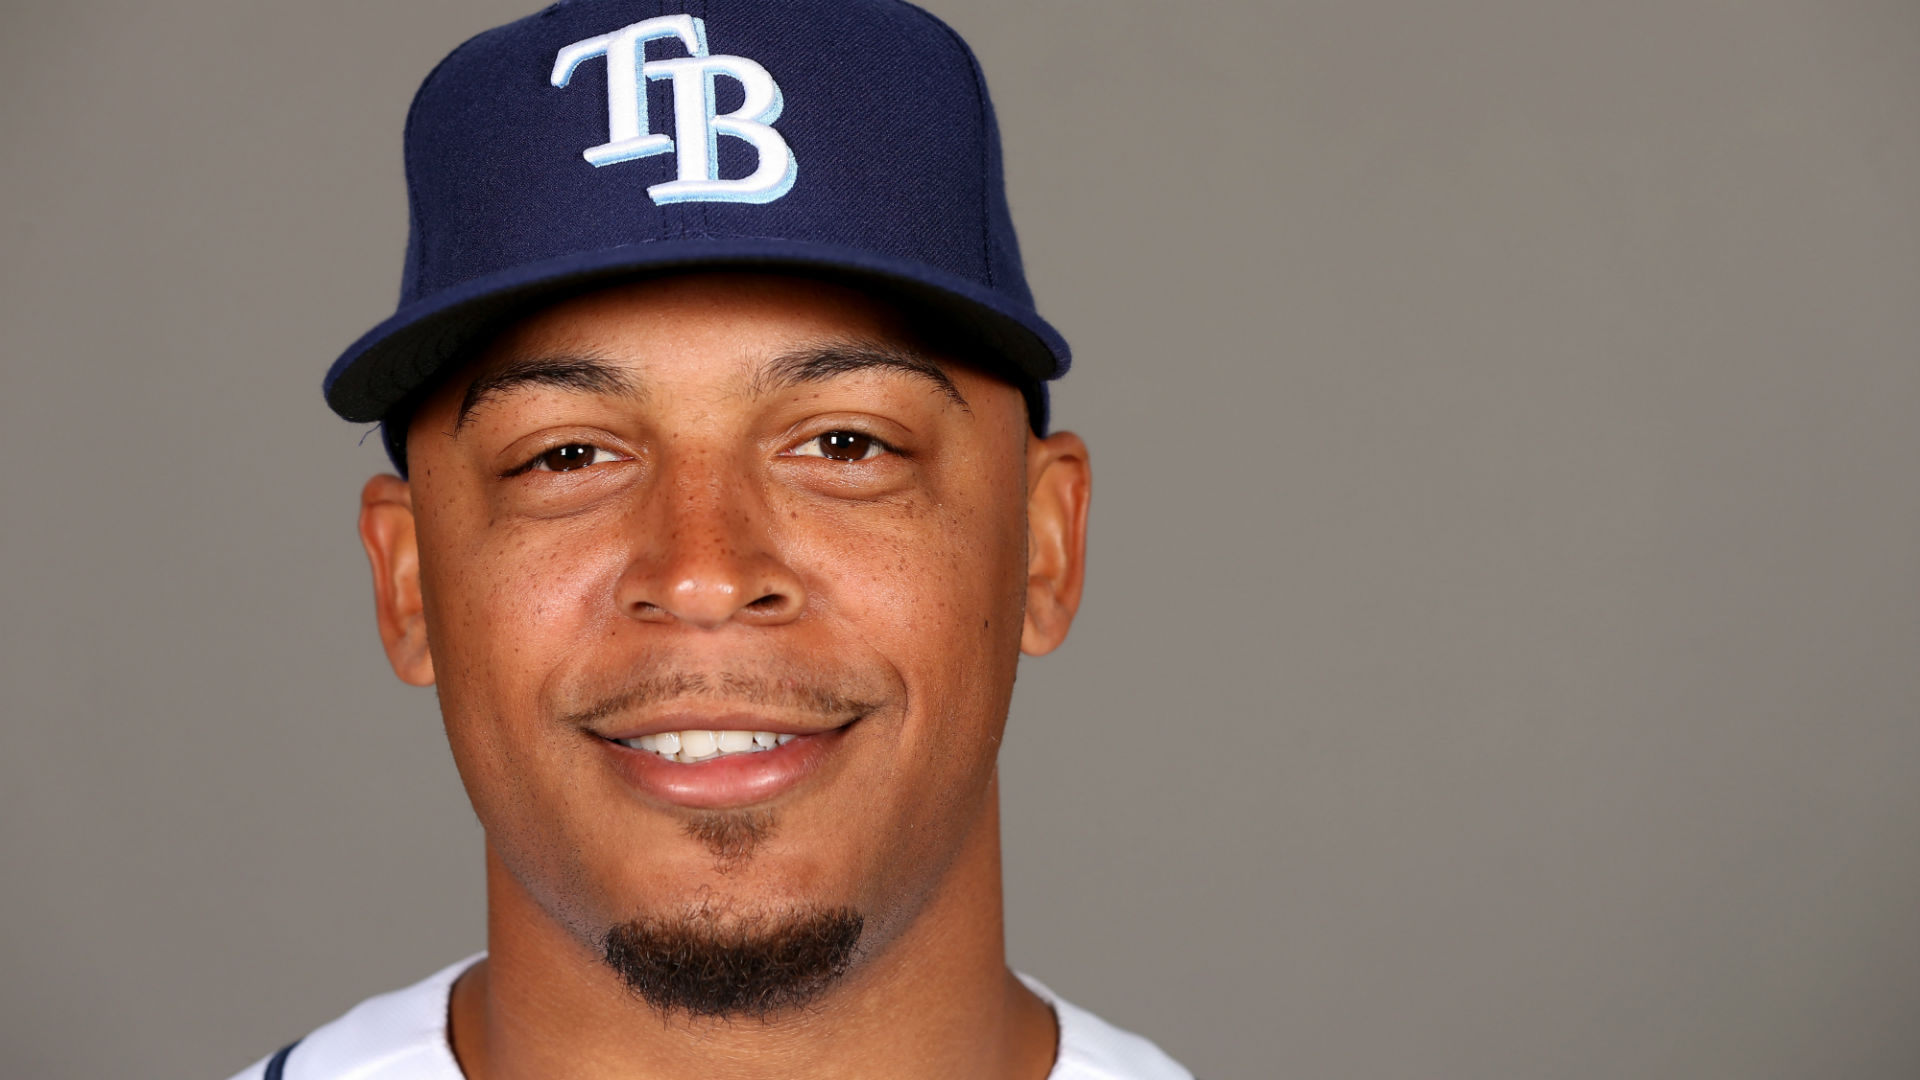 Rays' Desmond Jennings lands on disabled list